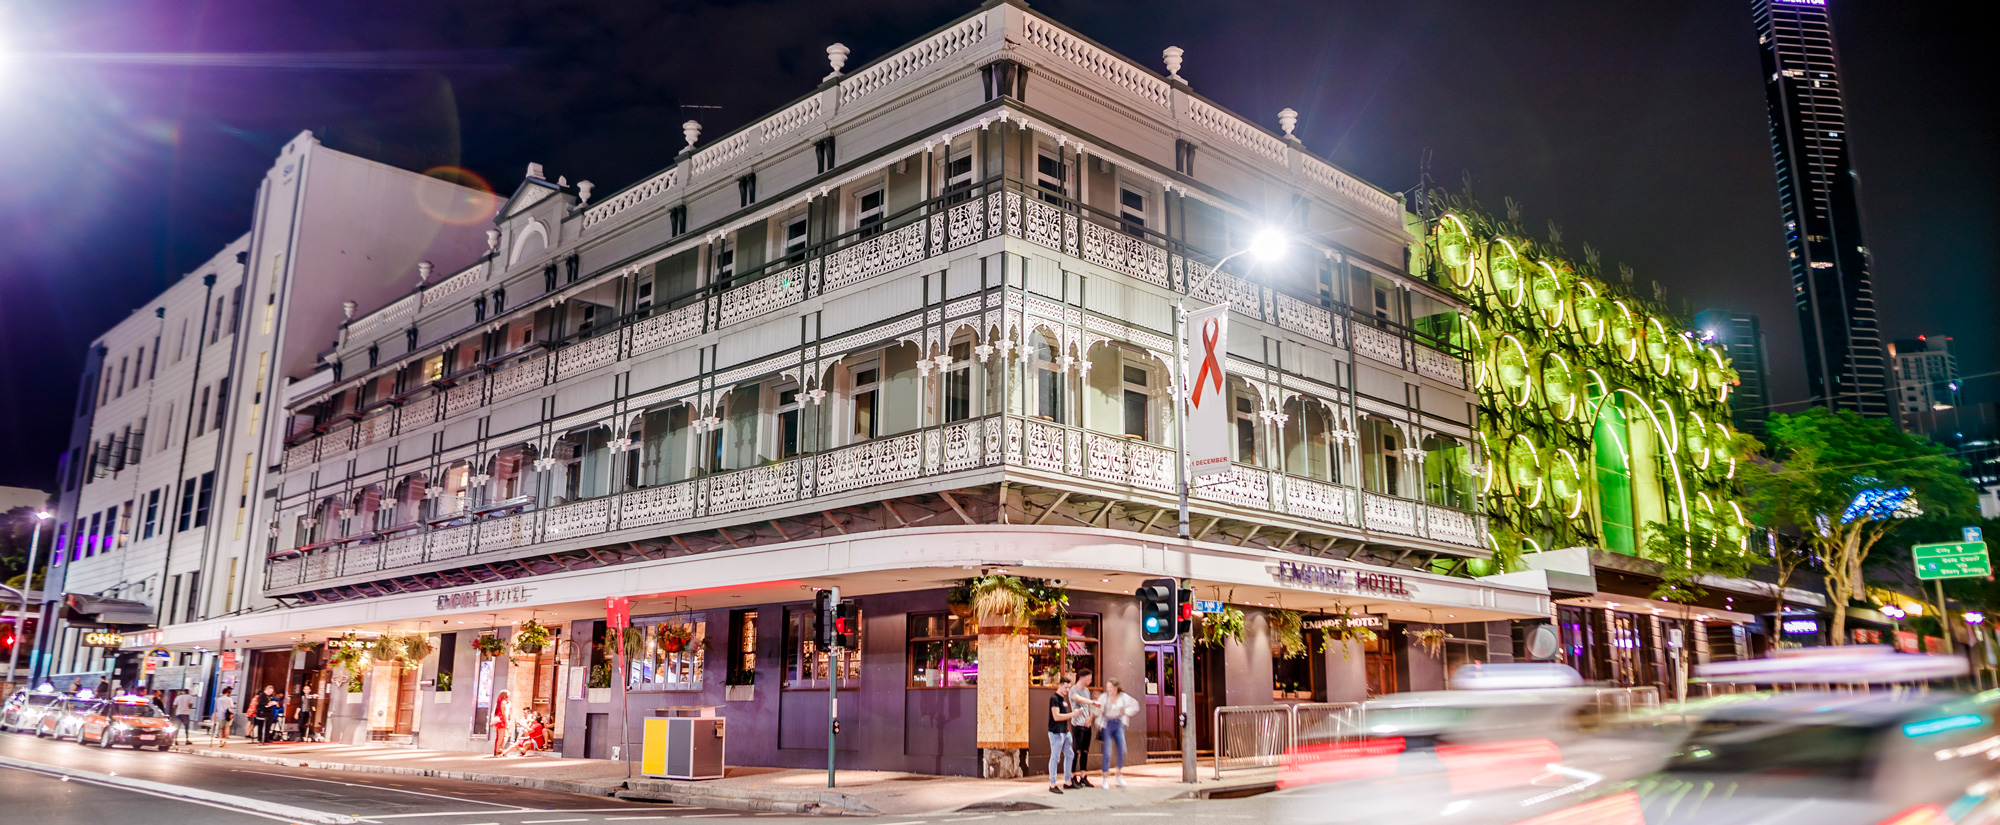 Empire Hotel Fortitude Valley, Brisbane Exterior